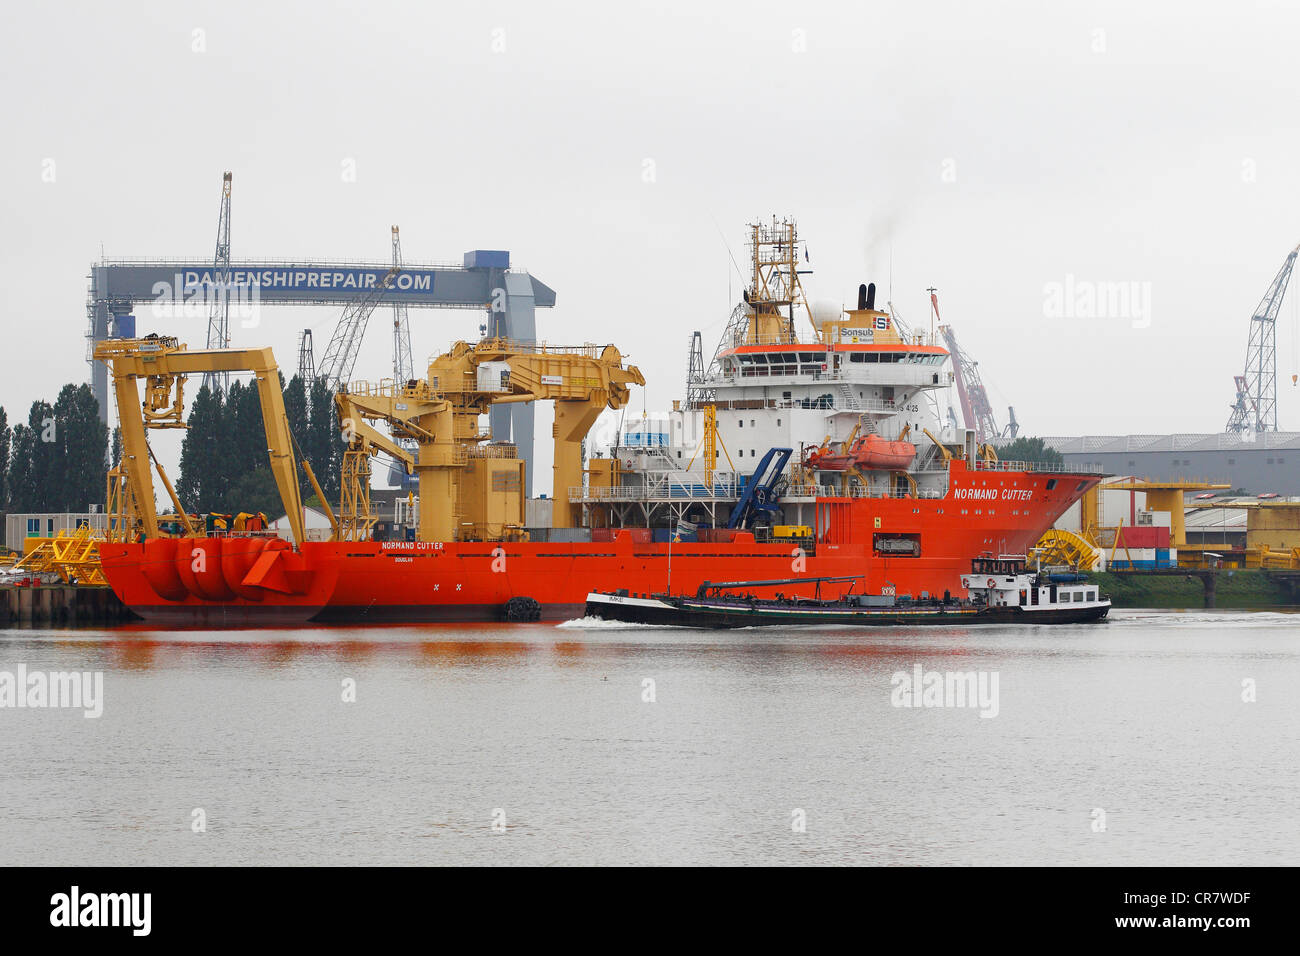 Technical servicing of ships, Rotterdam, Holland, the Netherlands, Europe - Stock Image